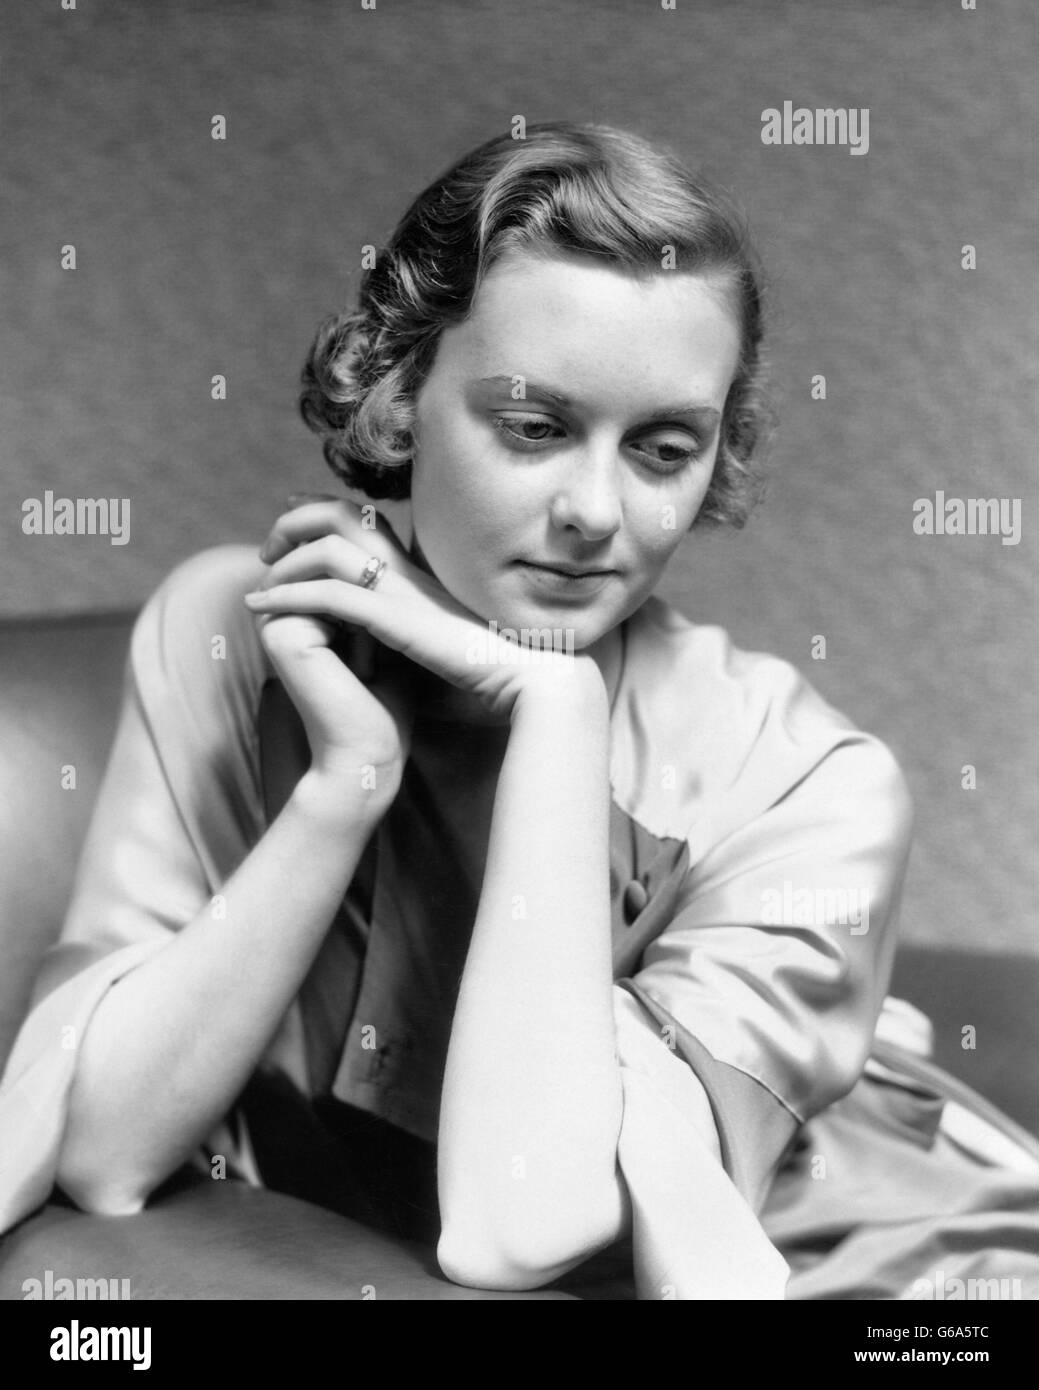 1930s PORTRAIT PENSIVE WOMAN SITTING IN CHAIR LEANING CHIN ON HAND THINKING - Stock Image